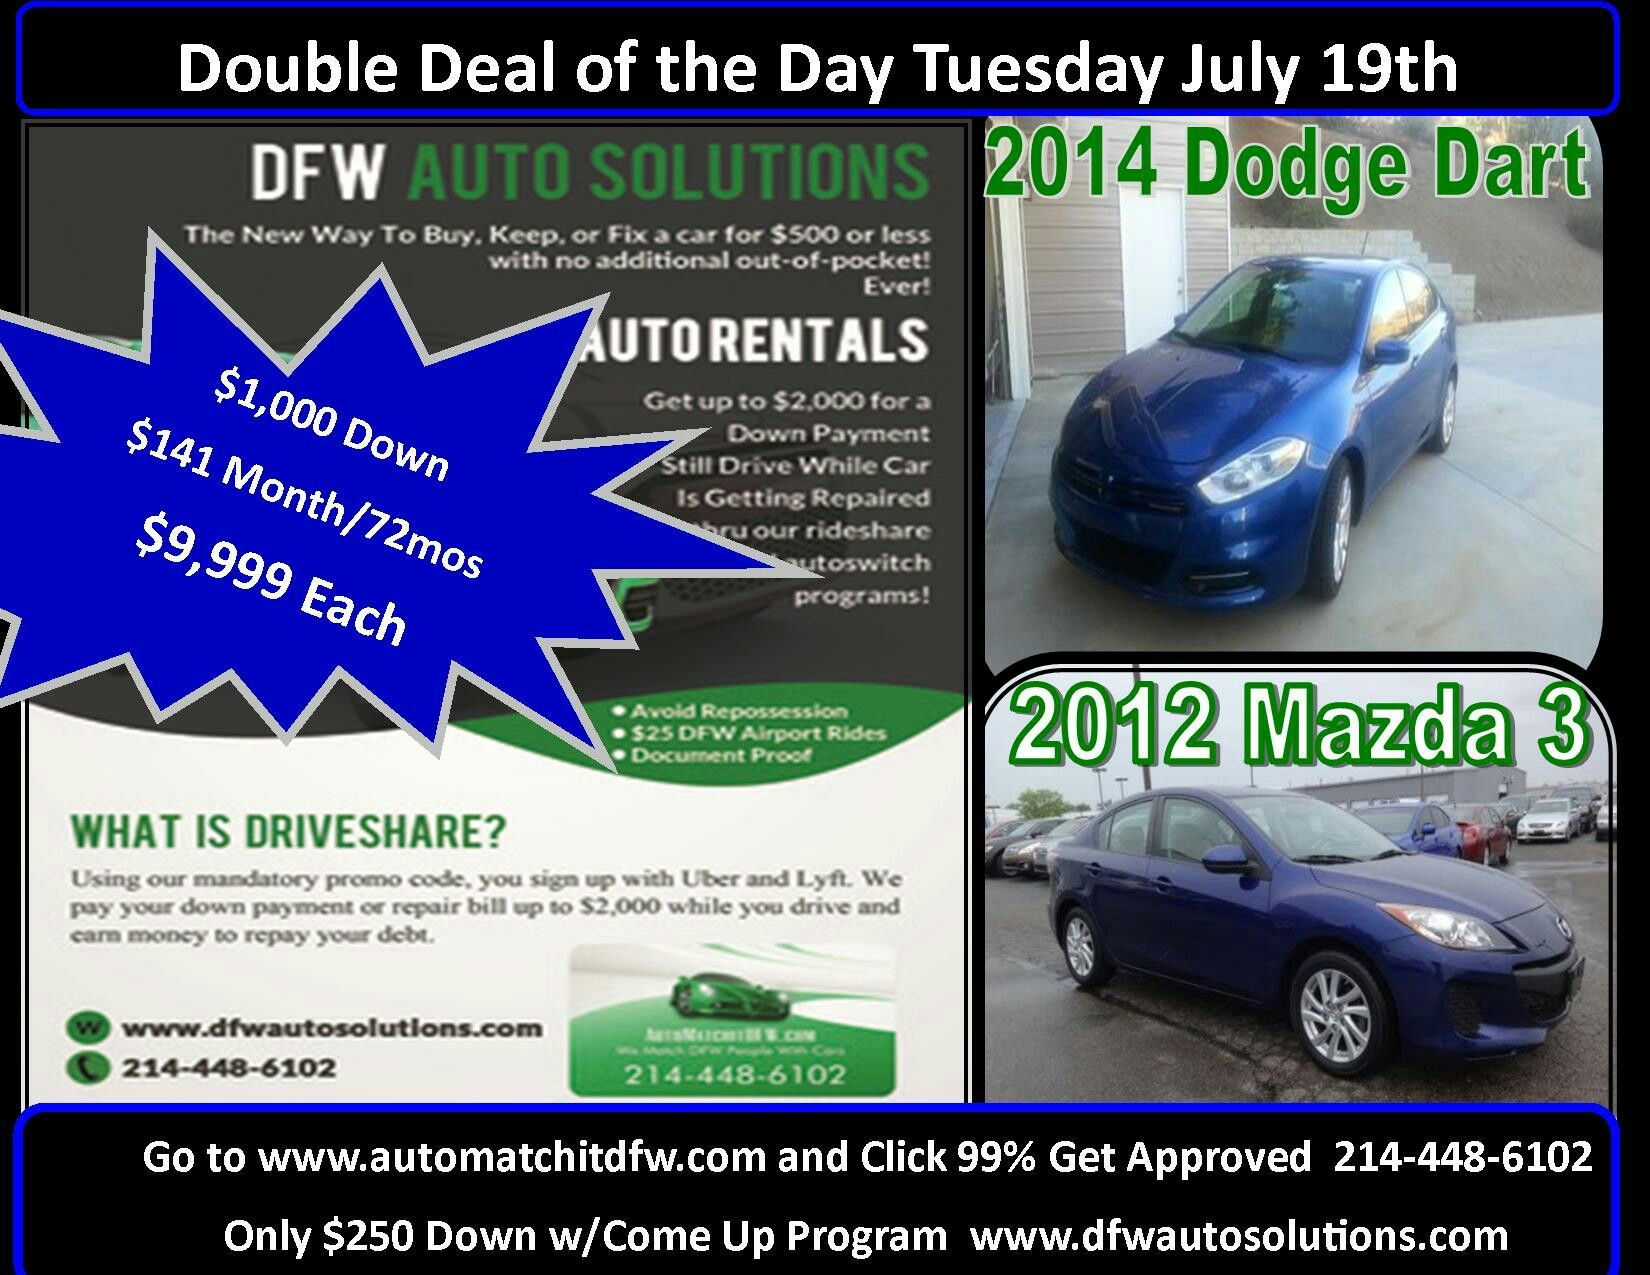 2 Cool 1 Owner Compacts For Under $10k. 2012 Mazda 3 And 2014 Dodge